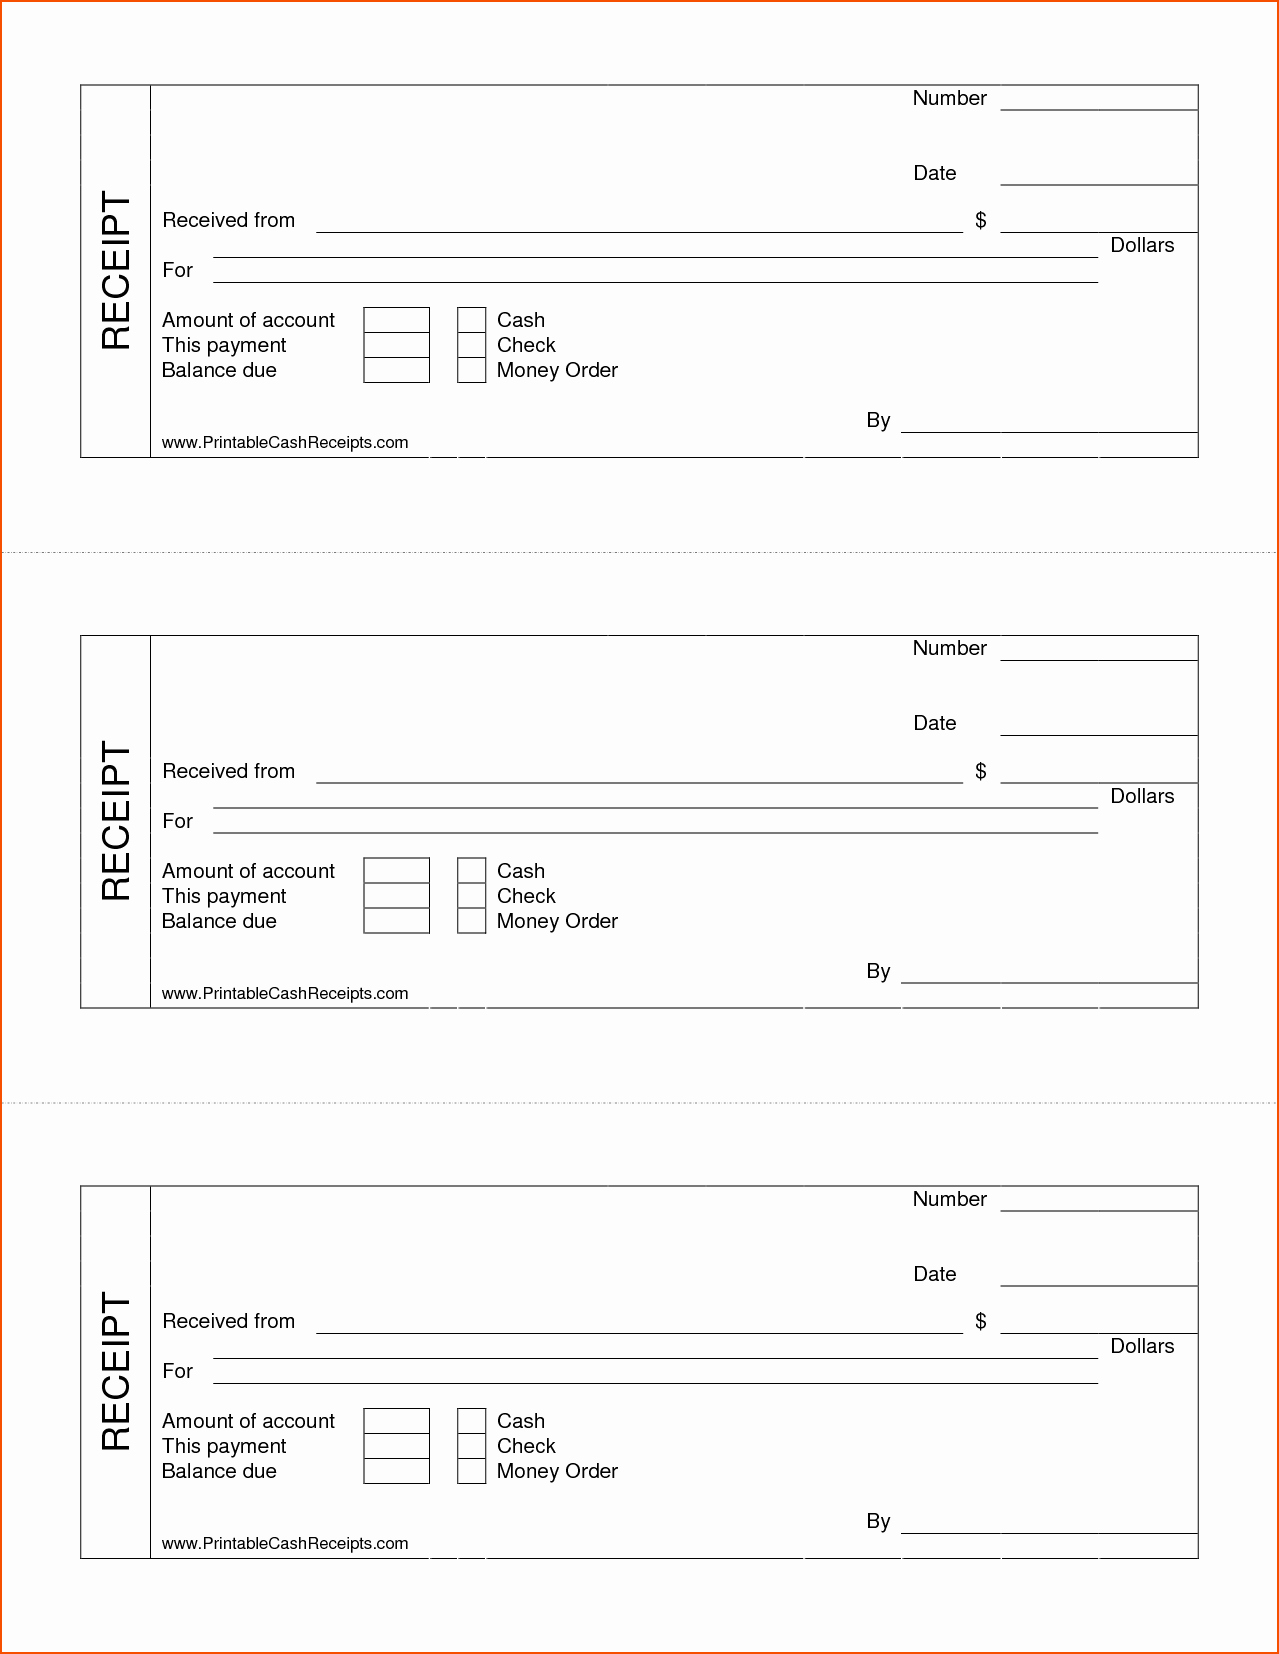 Receipt Template Free Printable Luxury 7 Printable Cash Receipt Bookletemplate